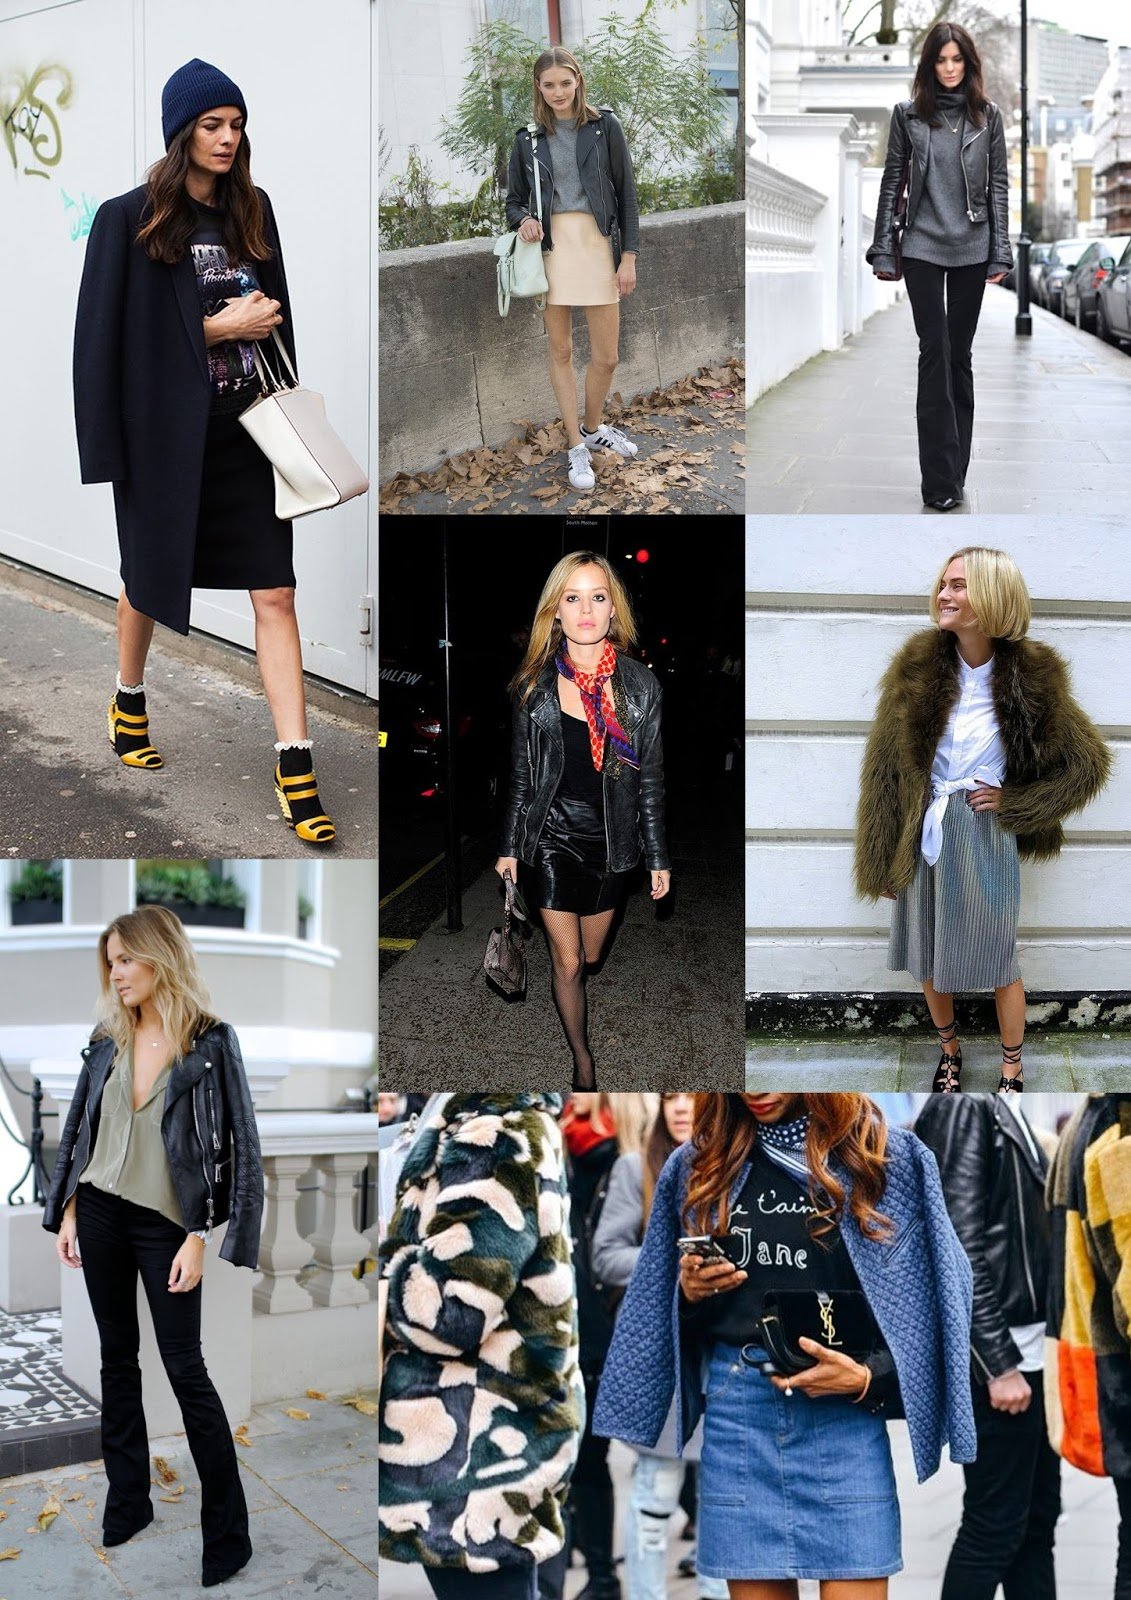 fashion street style inspiration taken from pinterest